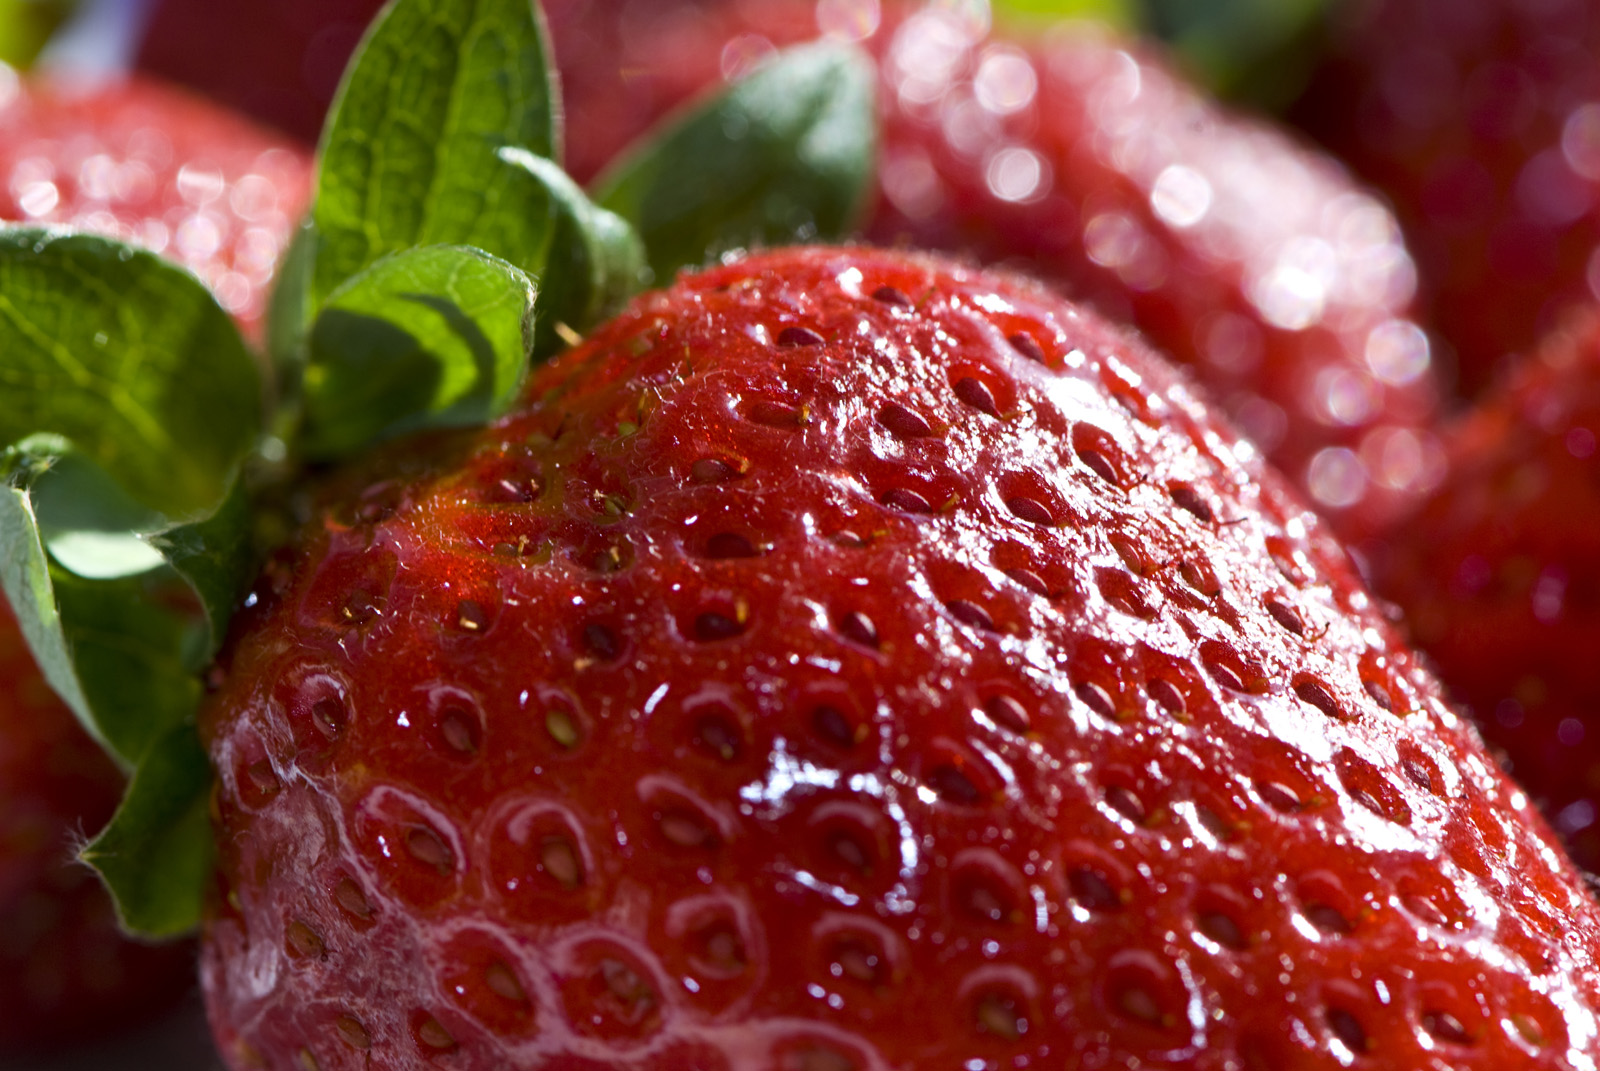 Strawberry close-up high-definition 7232